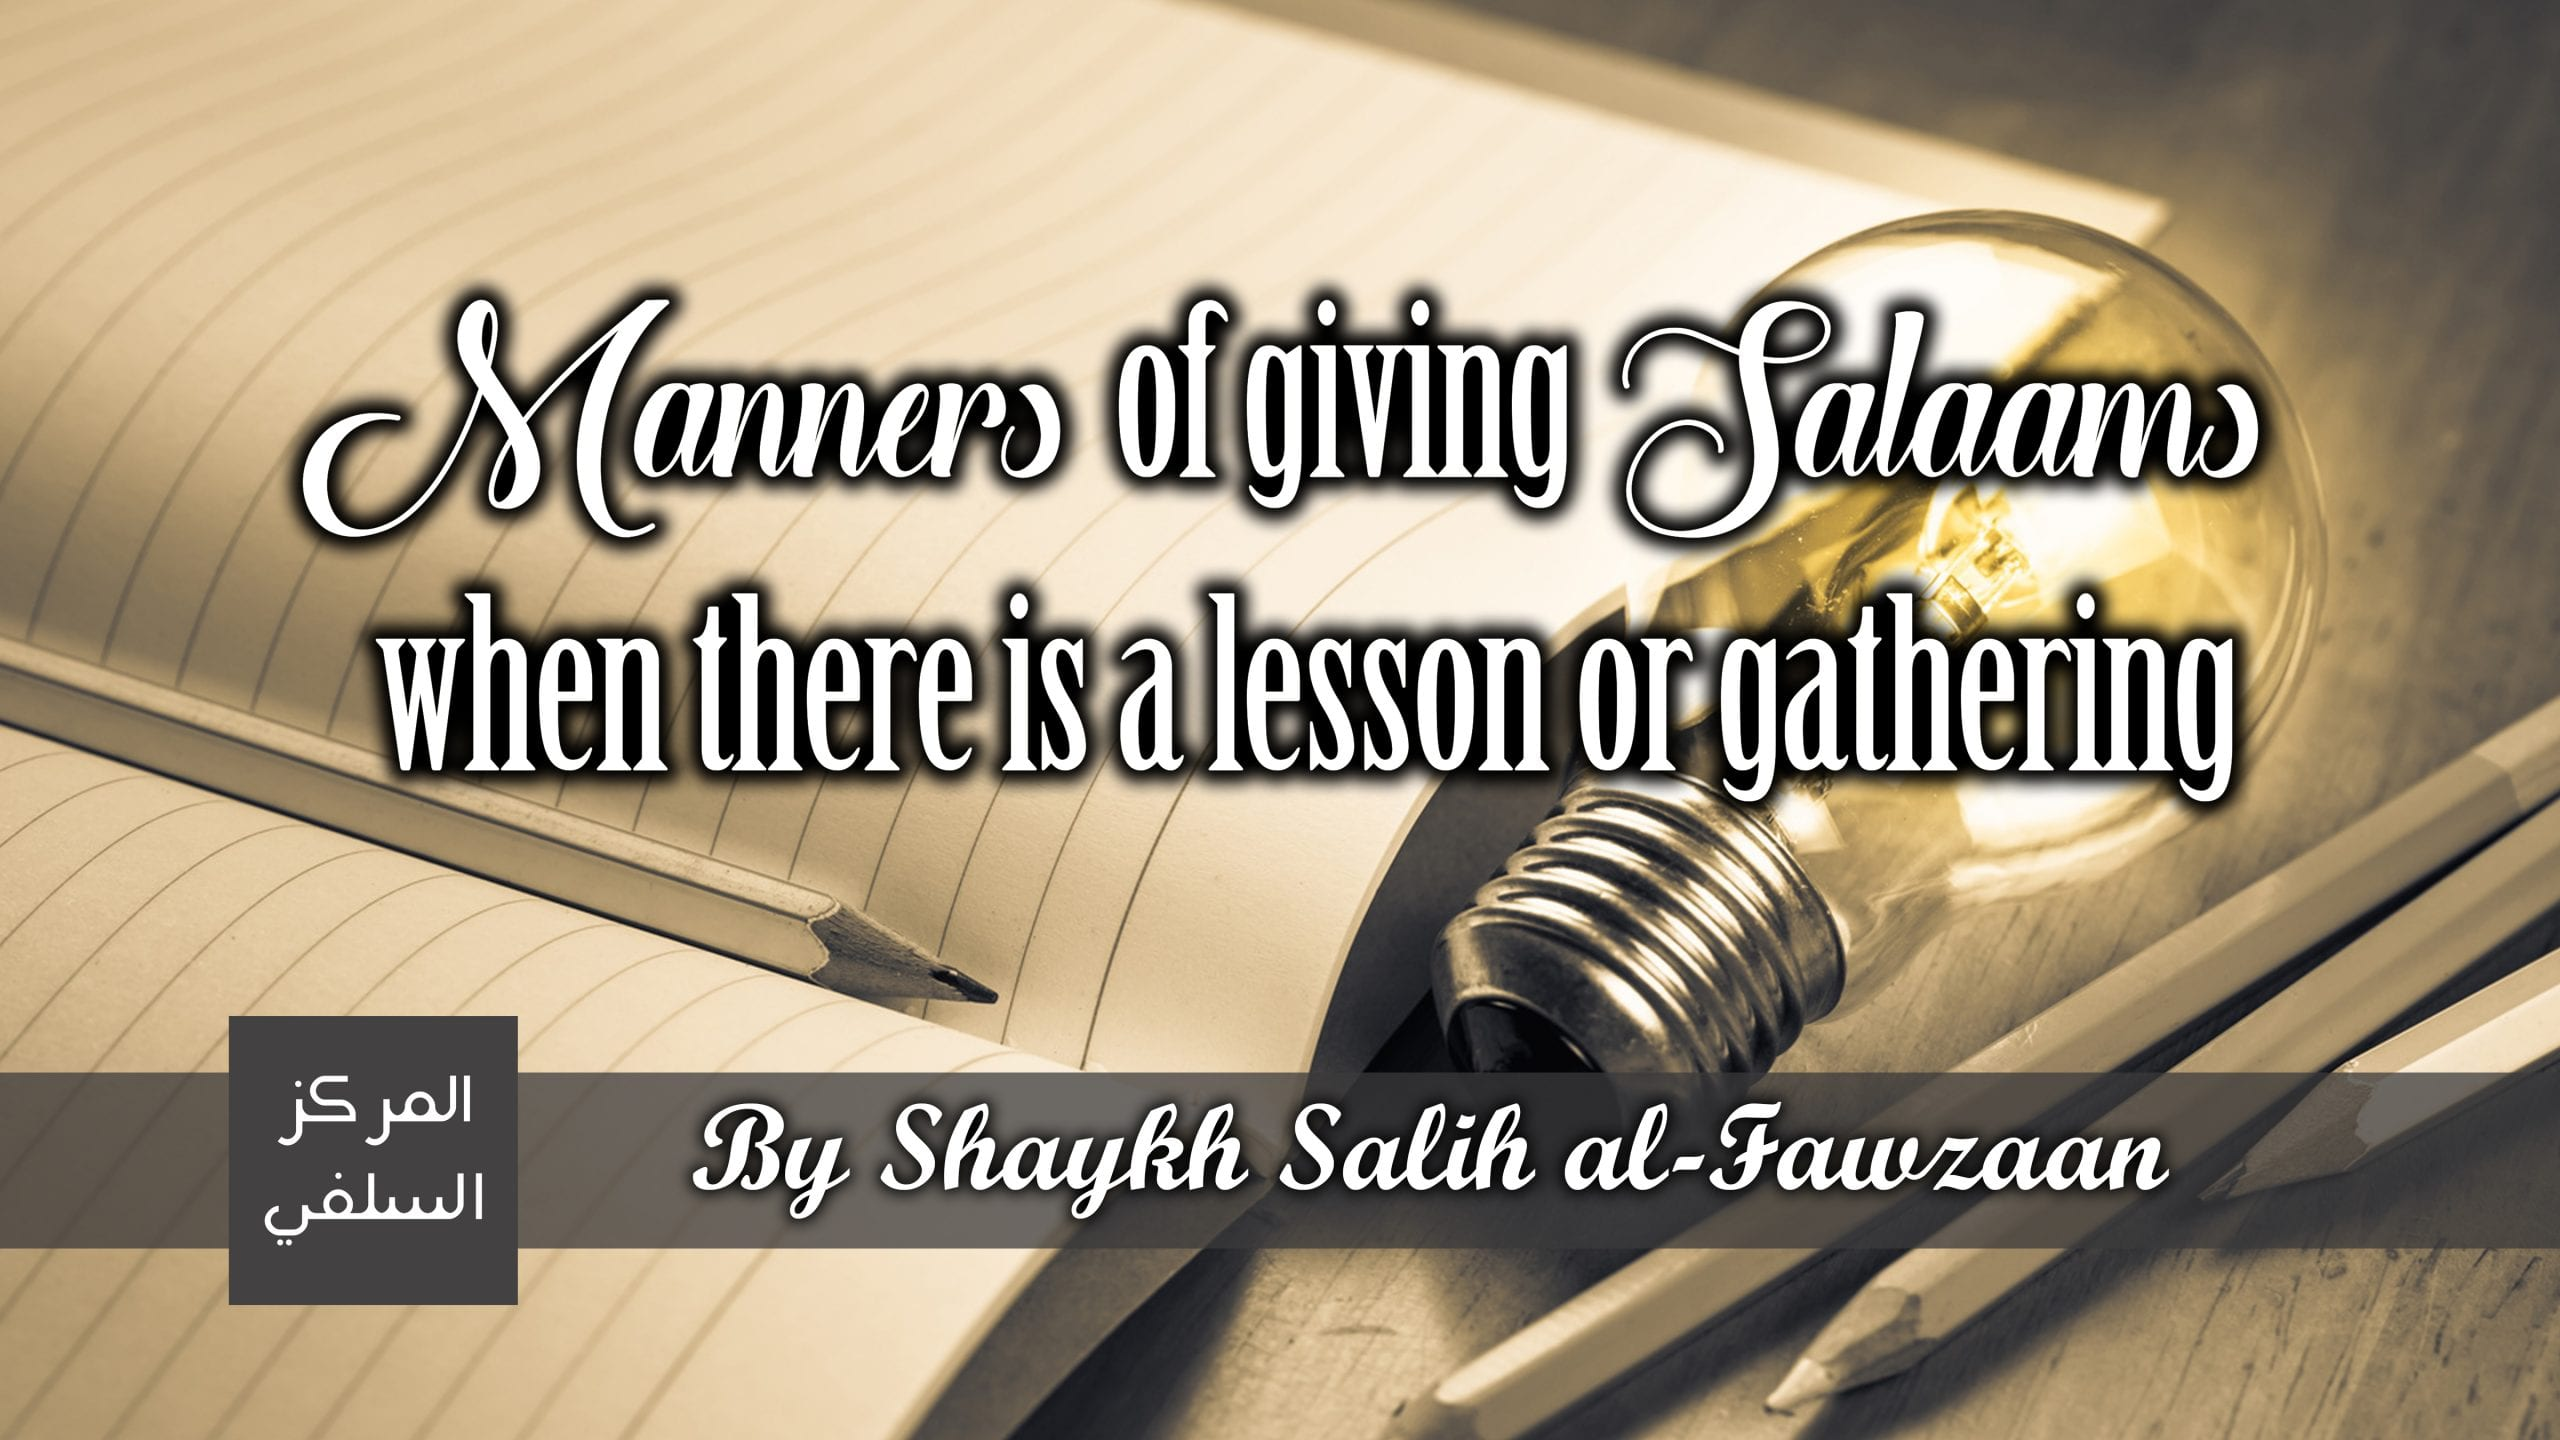 Manners of Giving Salaams When There is a Lesson or Gathering – Shaykh Salih al-Fawzaan